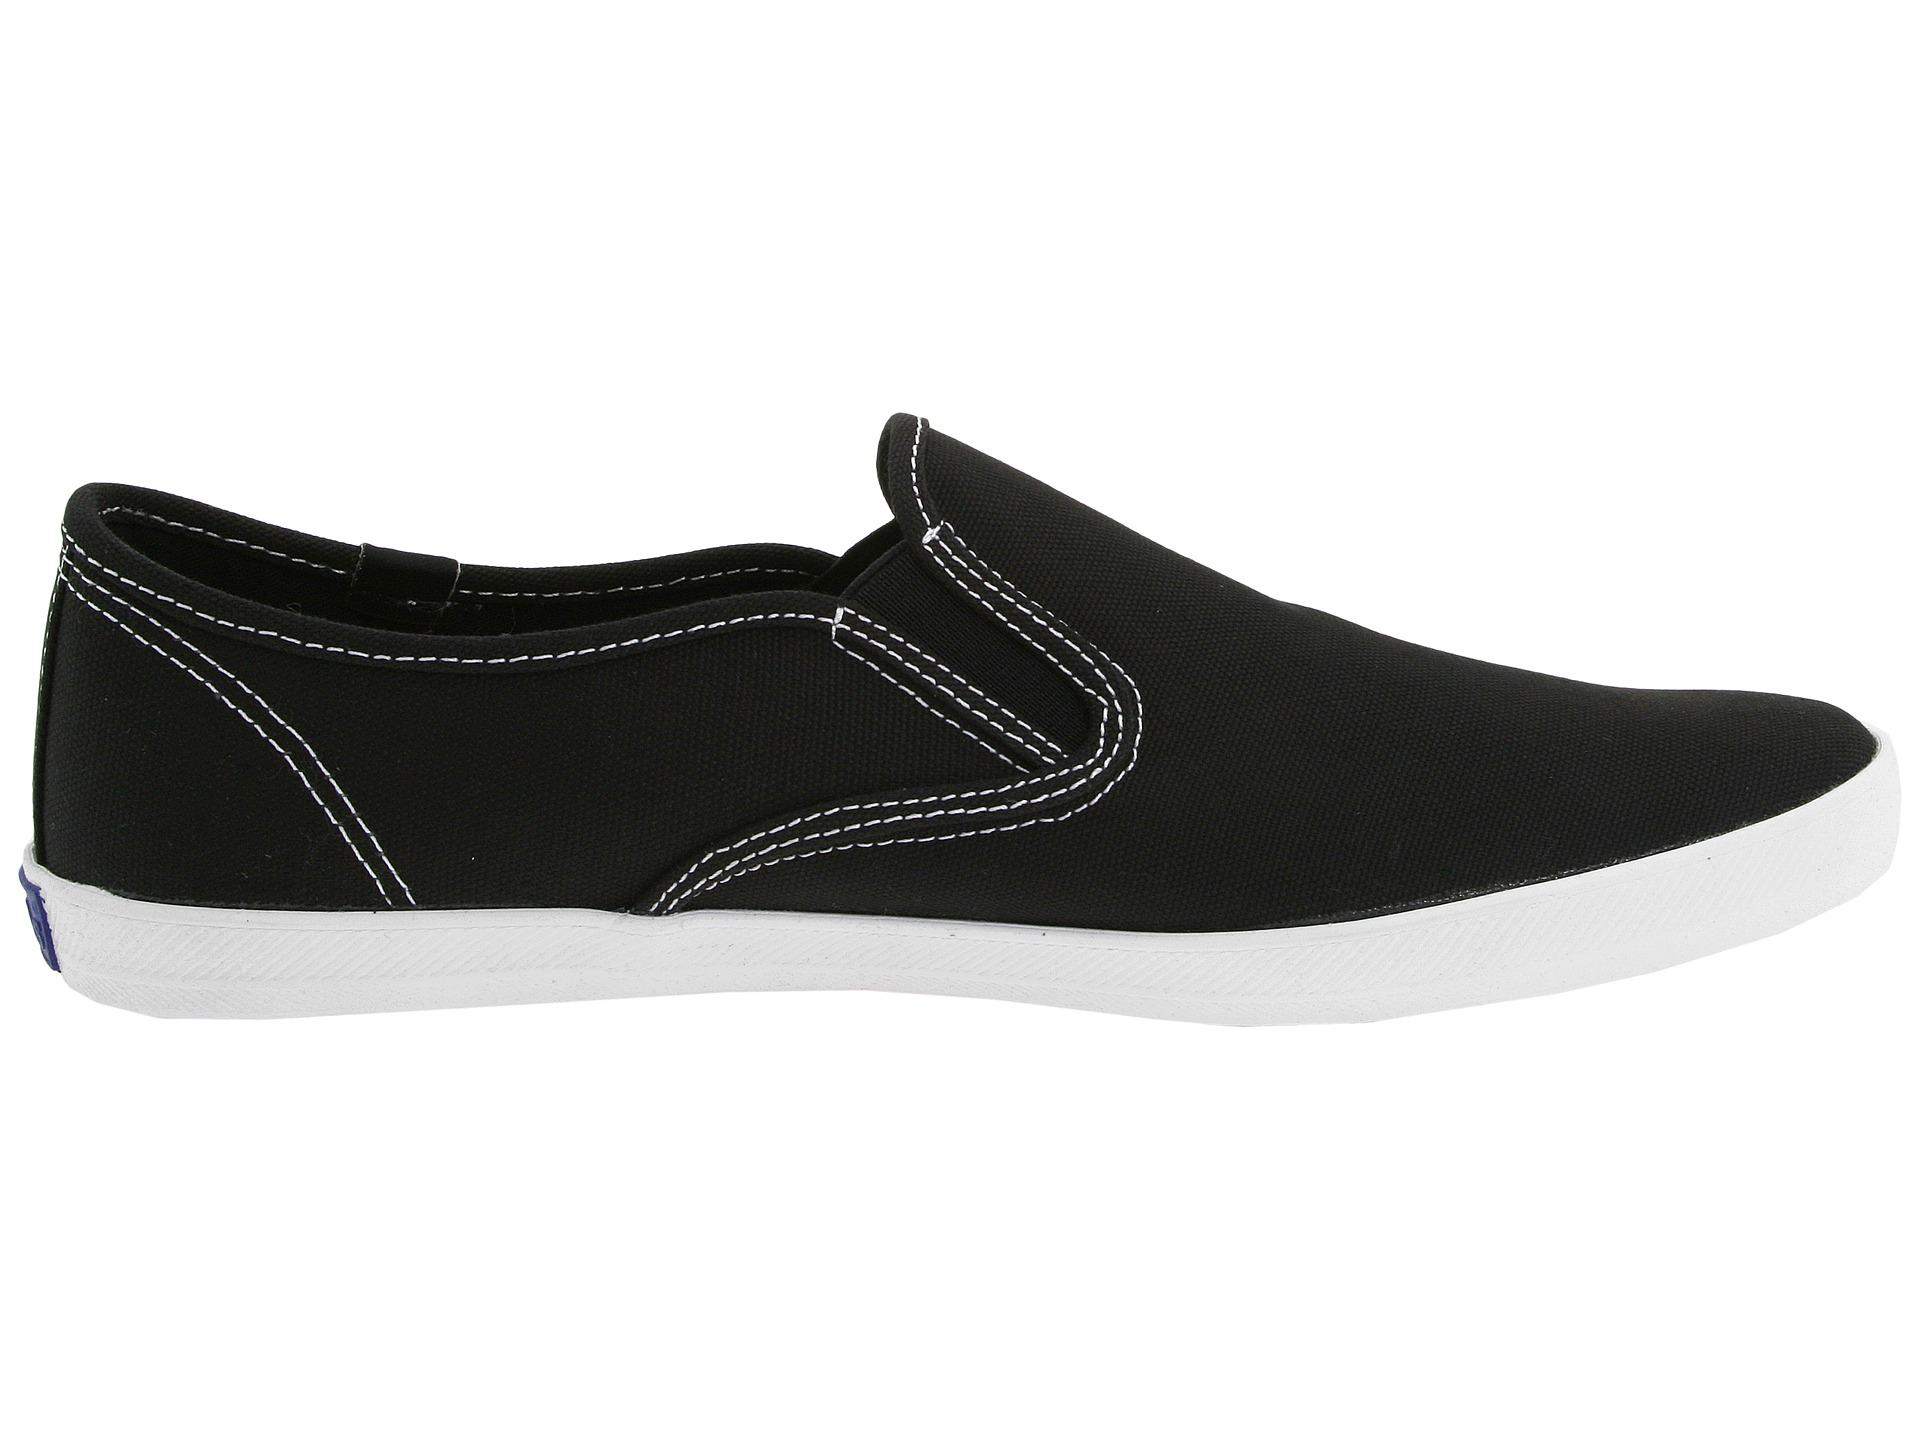 keds chion slip on canvas zappos free shipping